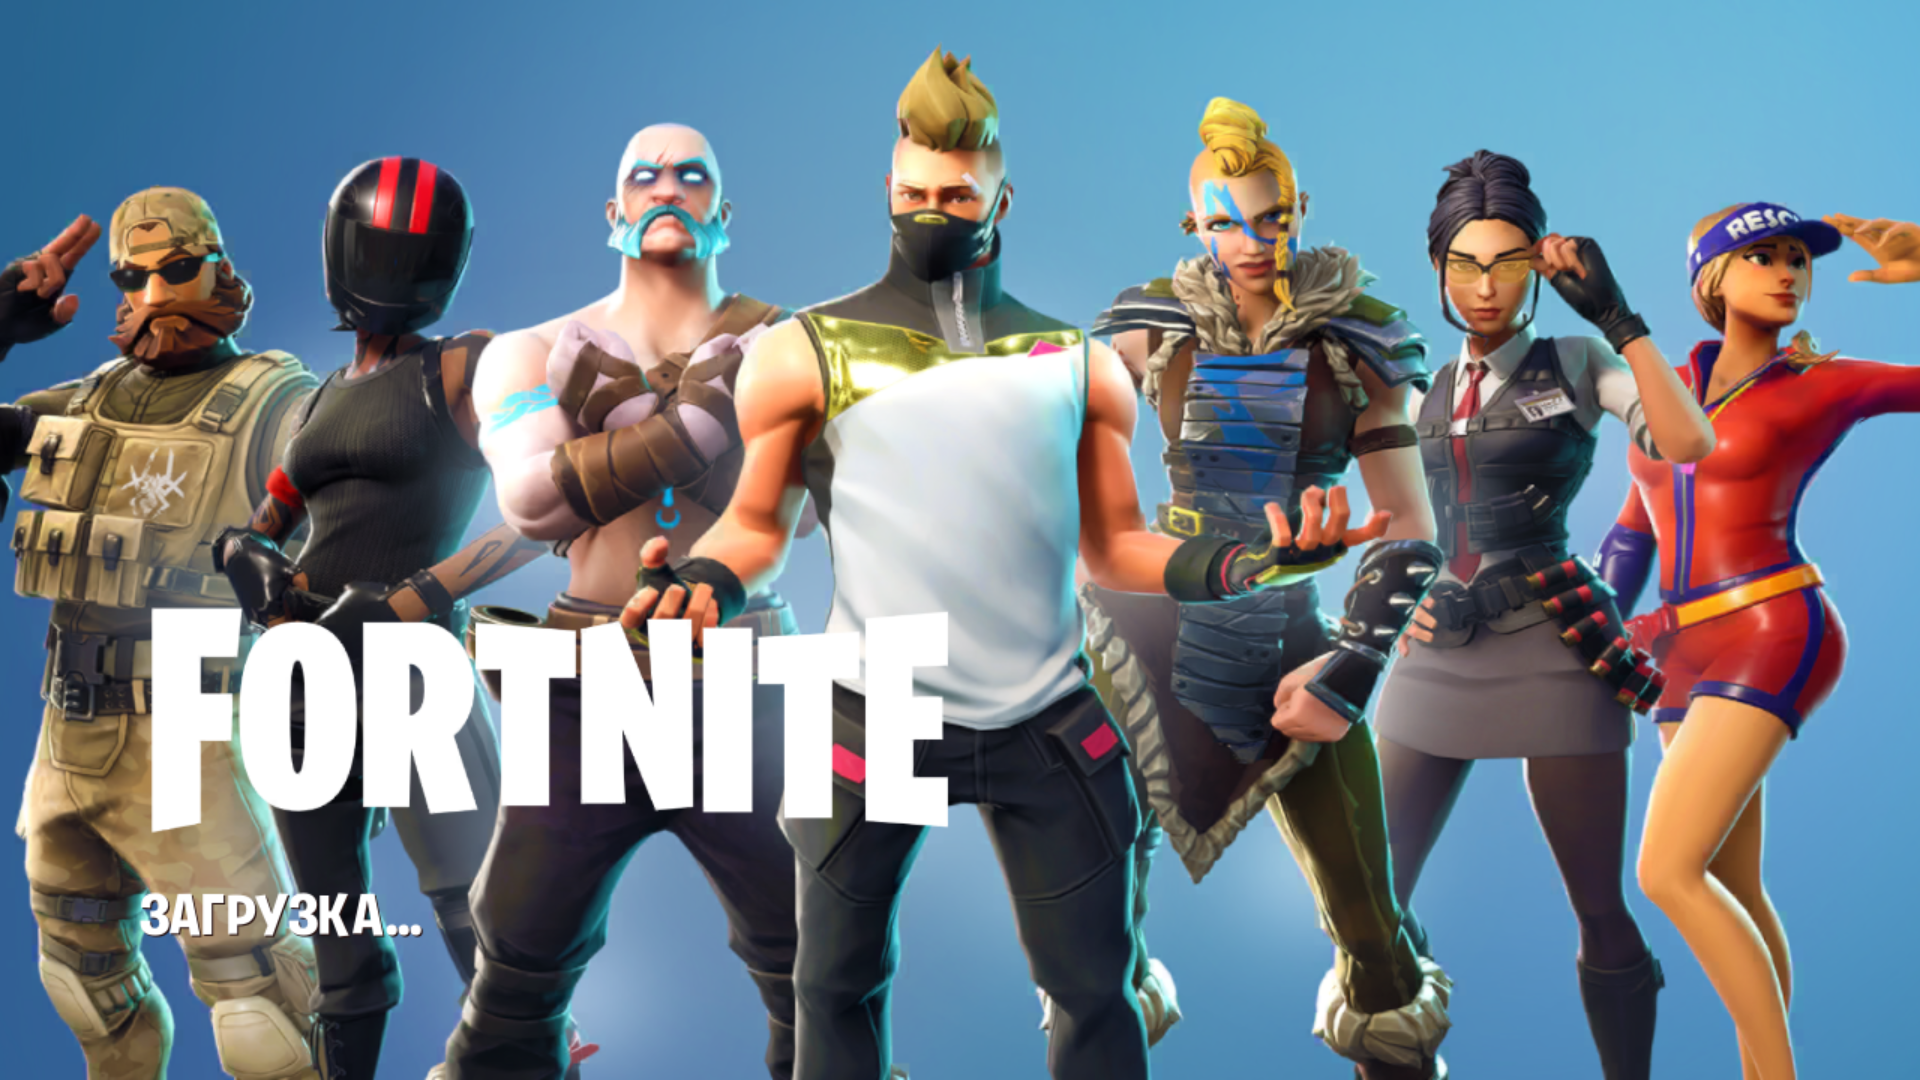 Epic game fortnite android download